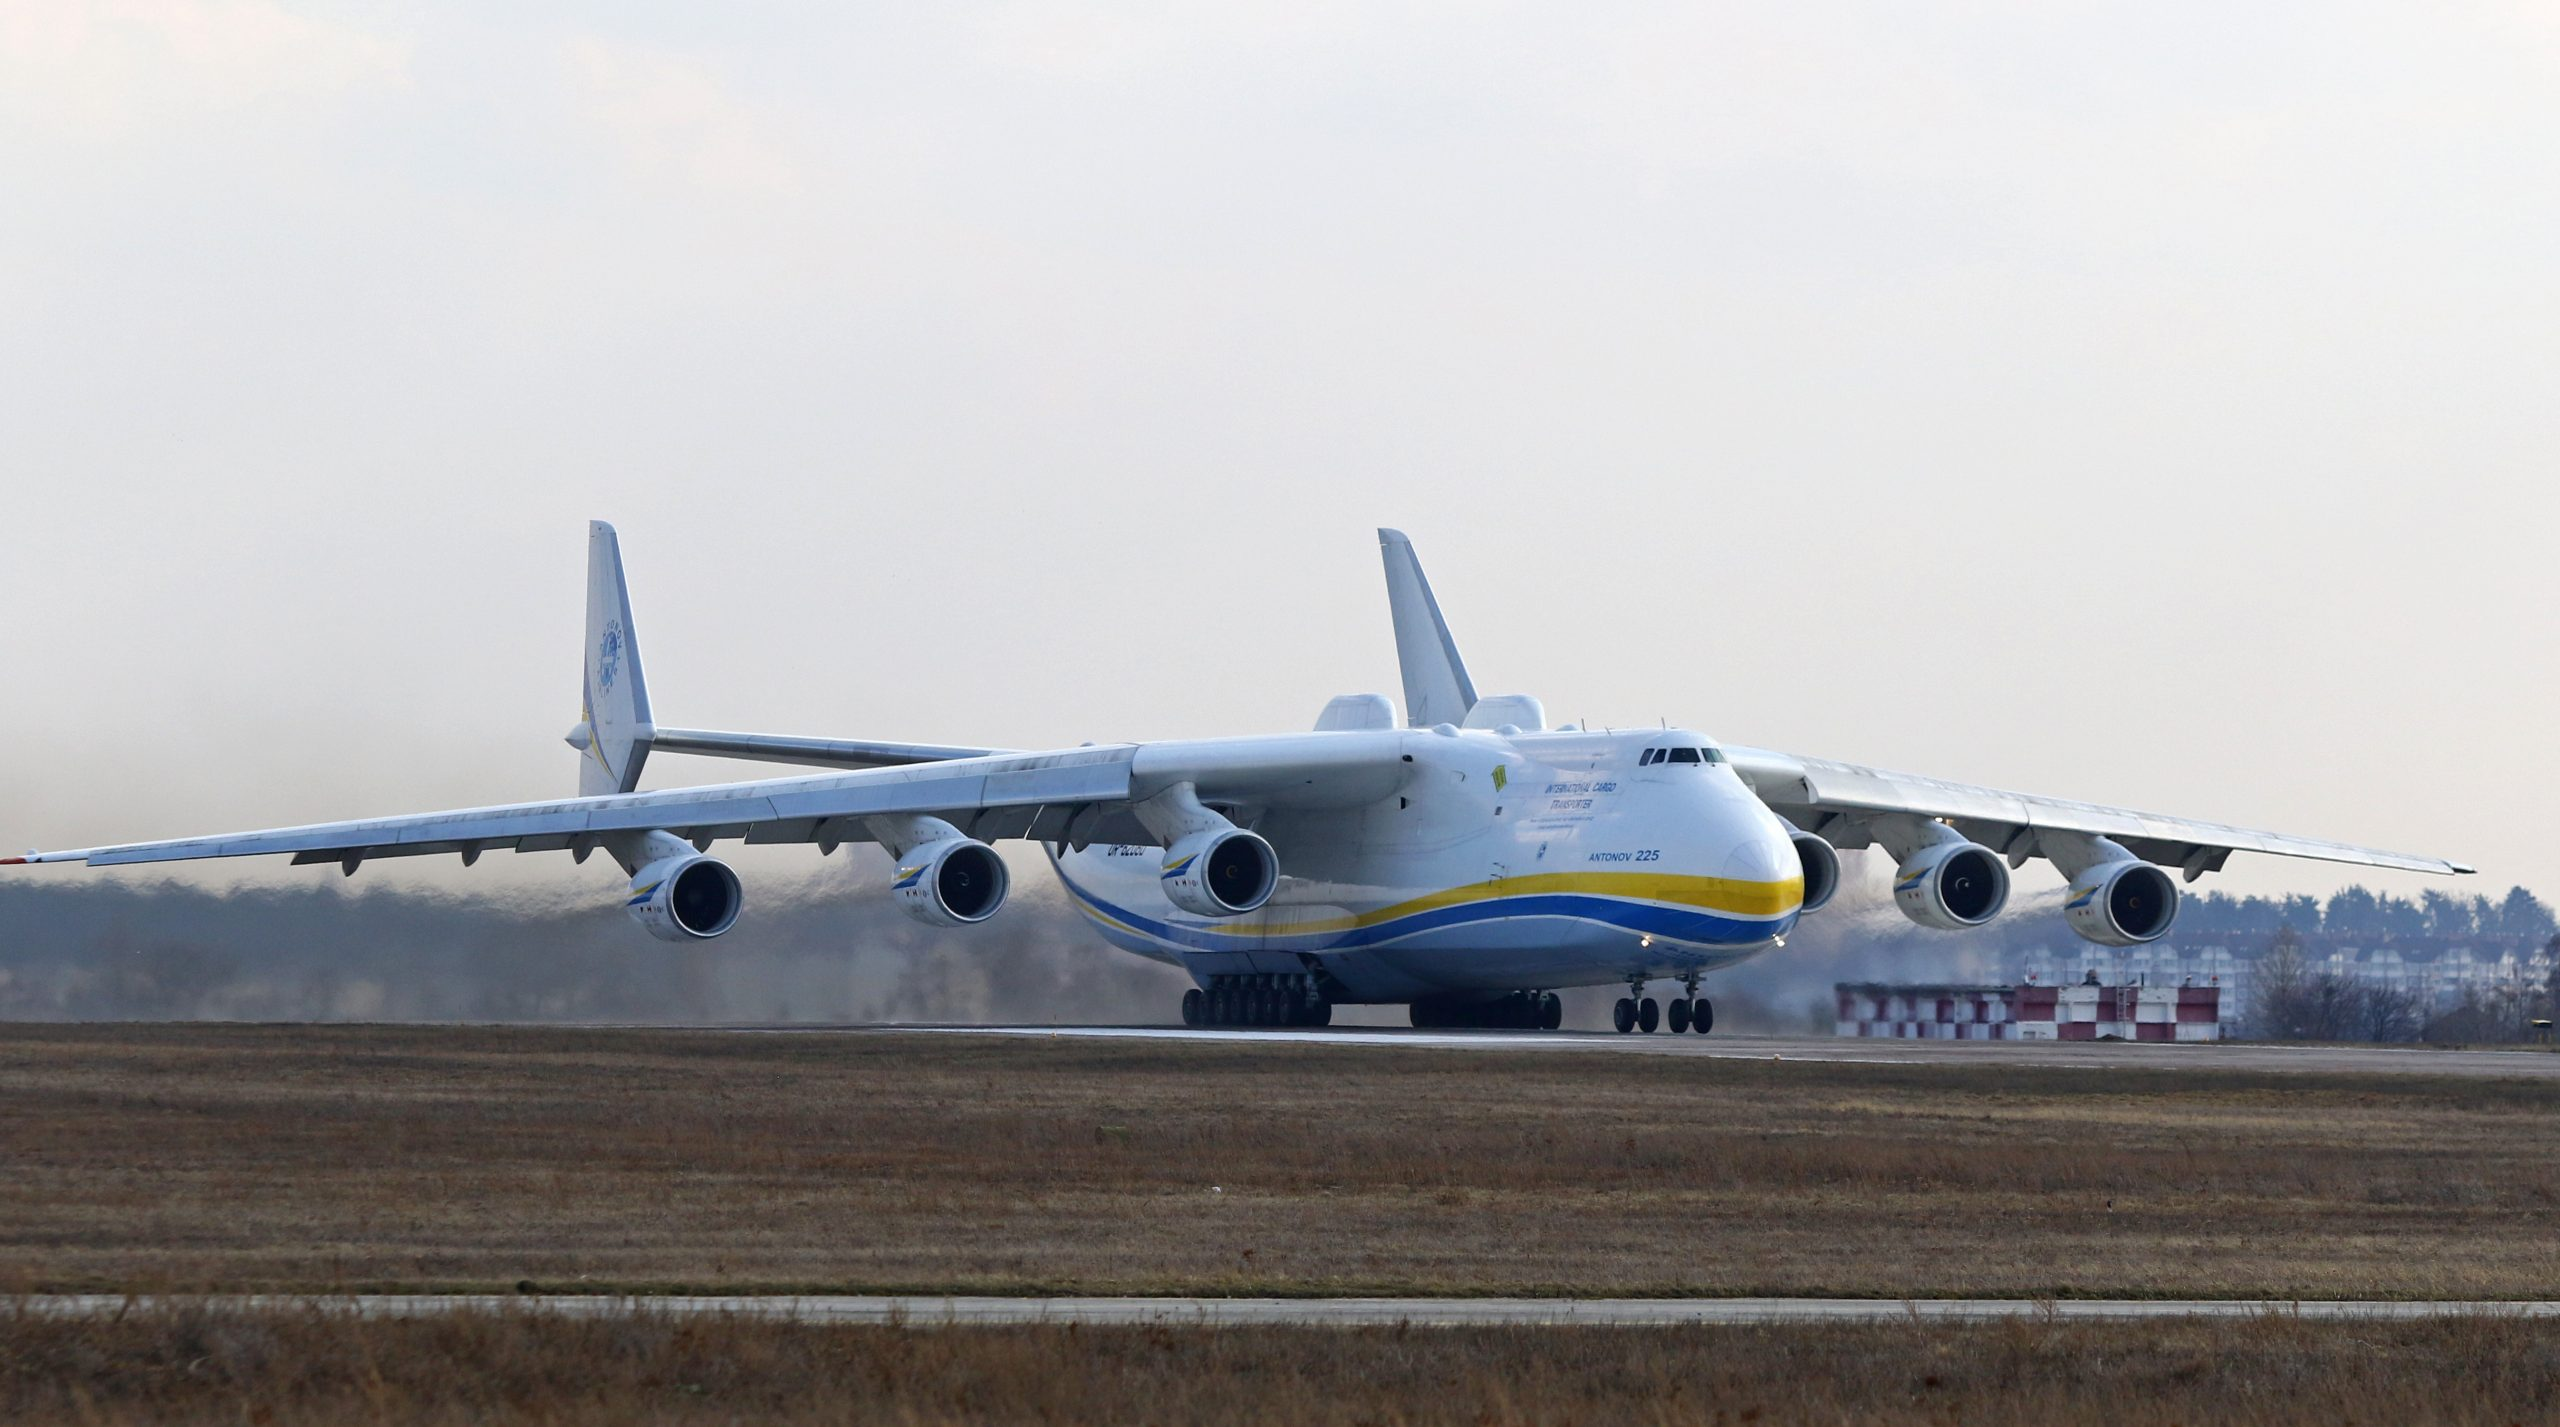 """krainian Antonov An-225 """"Mriya"""" aircraft takes off from the Gostomel airport in Kyiv, Ukraine. The giant An-225 cargo plane is the heaviest aircraft ever built"""